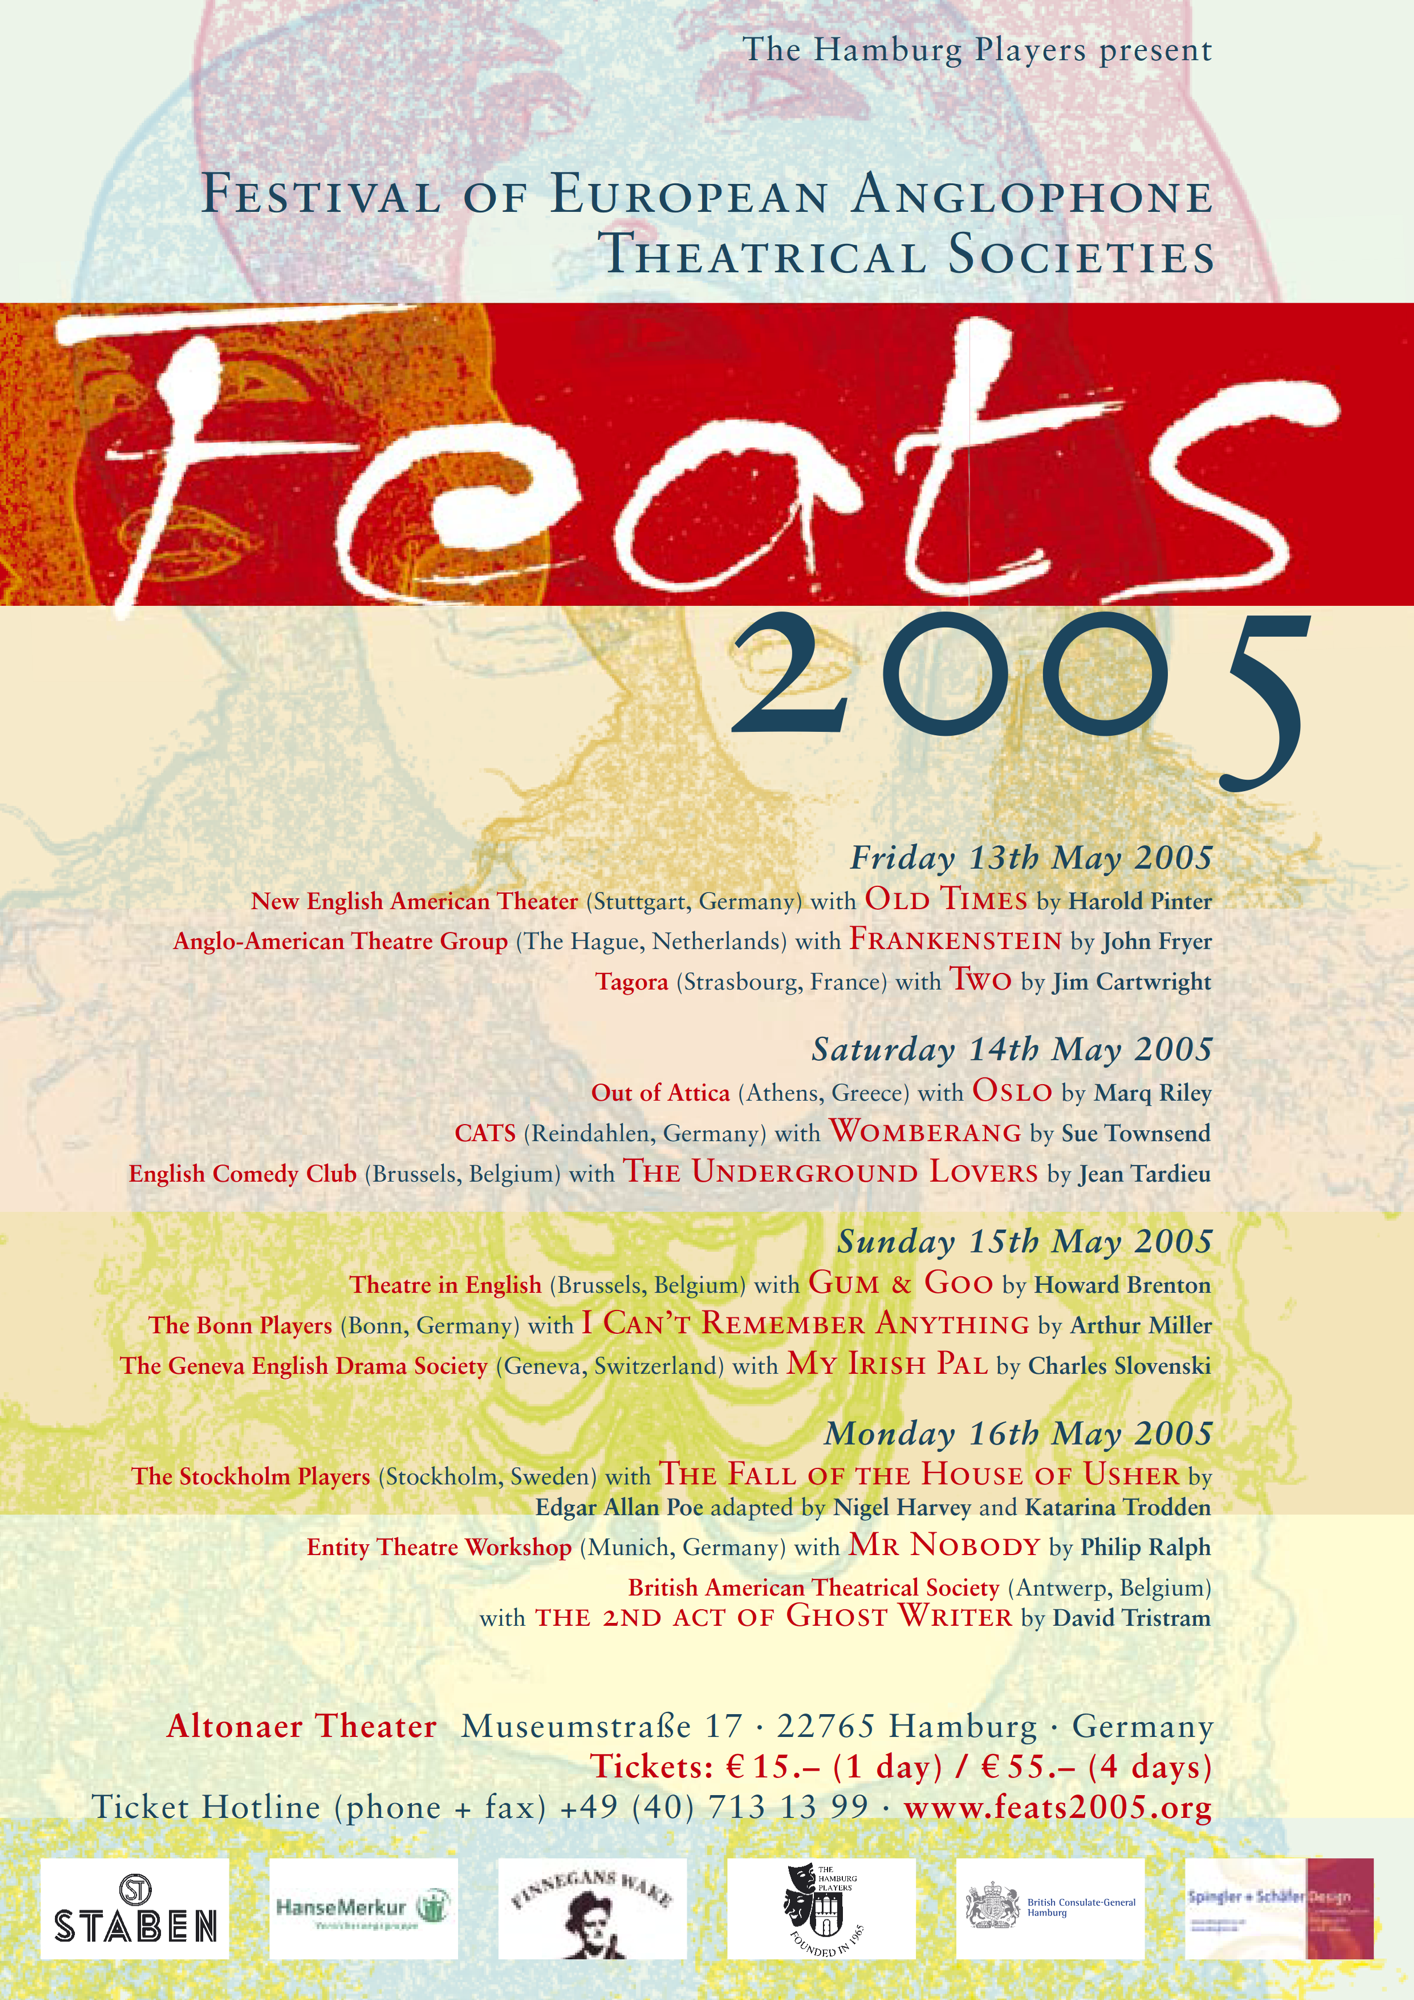 FEATS 2005 poster